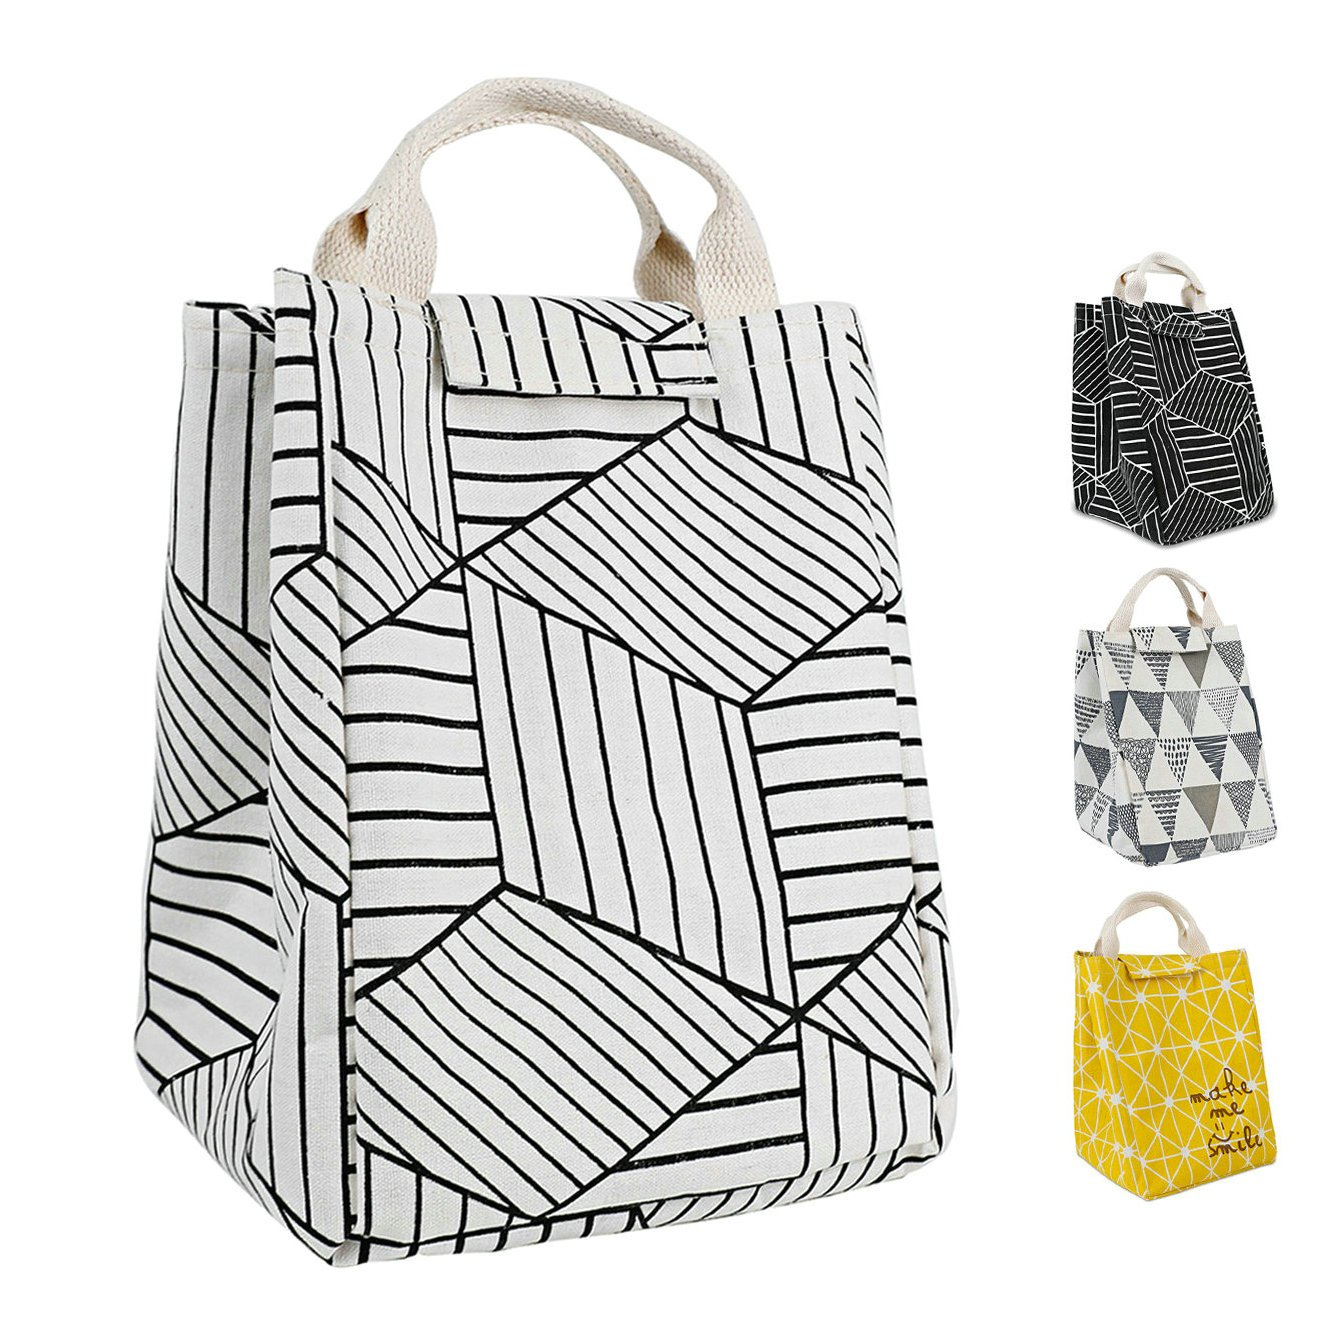 HOMESPON Reusable Lunch Bags Printed Canvas Fabric Insulated Waterproof Aluminum Foil, Lunch Box Women, Kids, Students (Geometric Pattern-White)